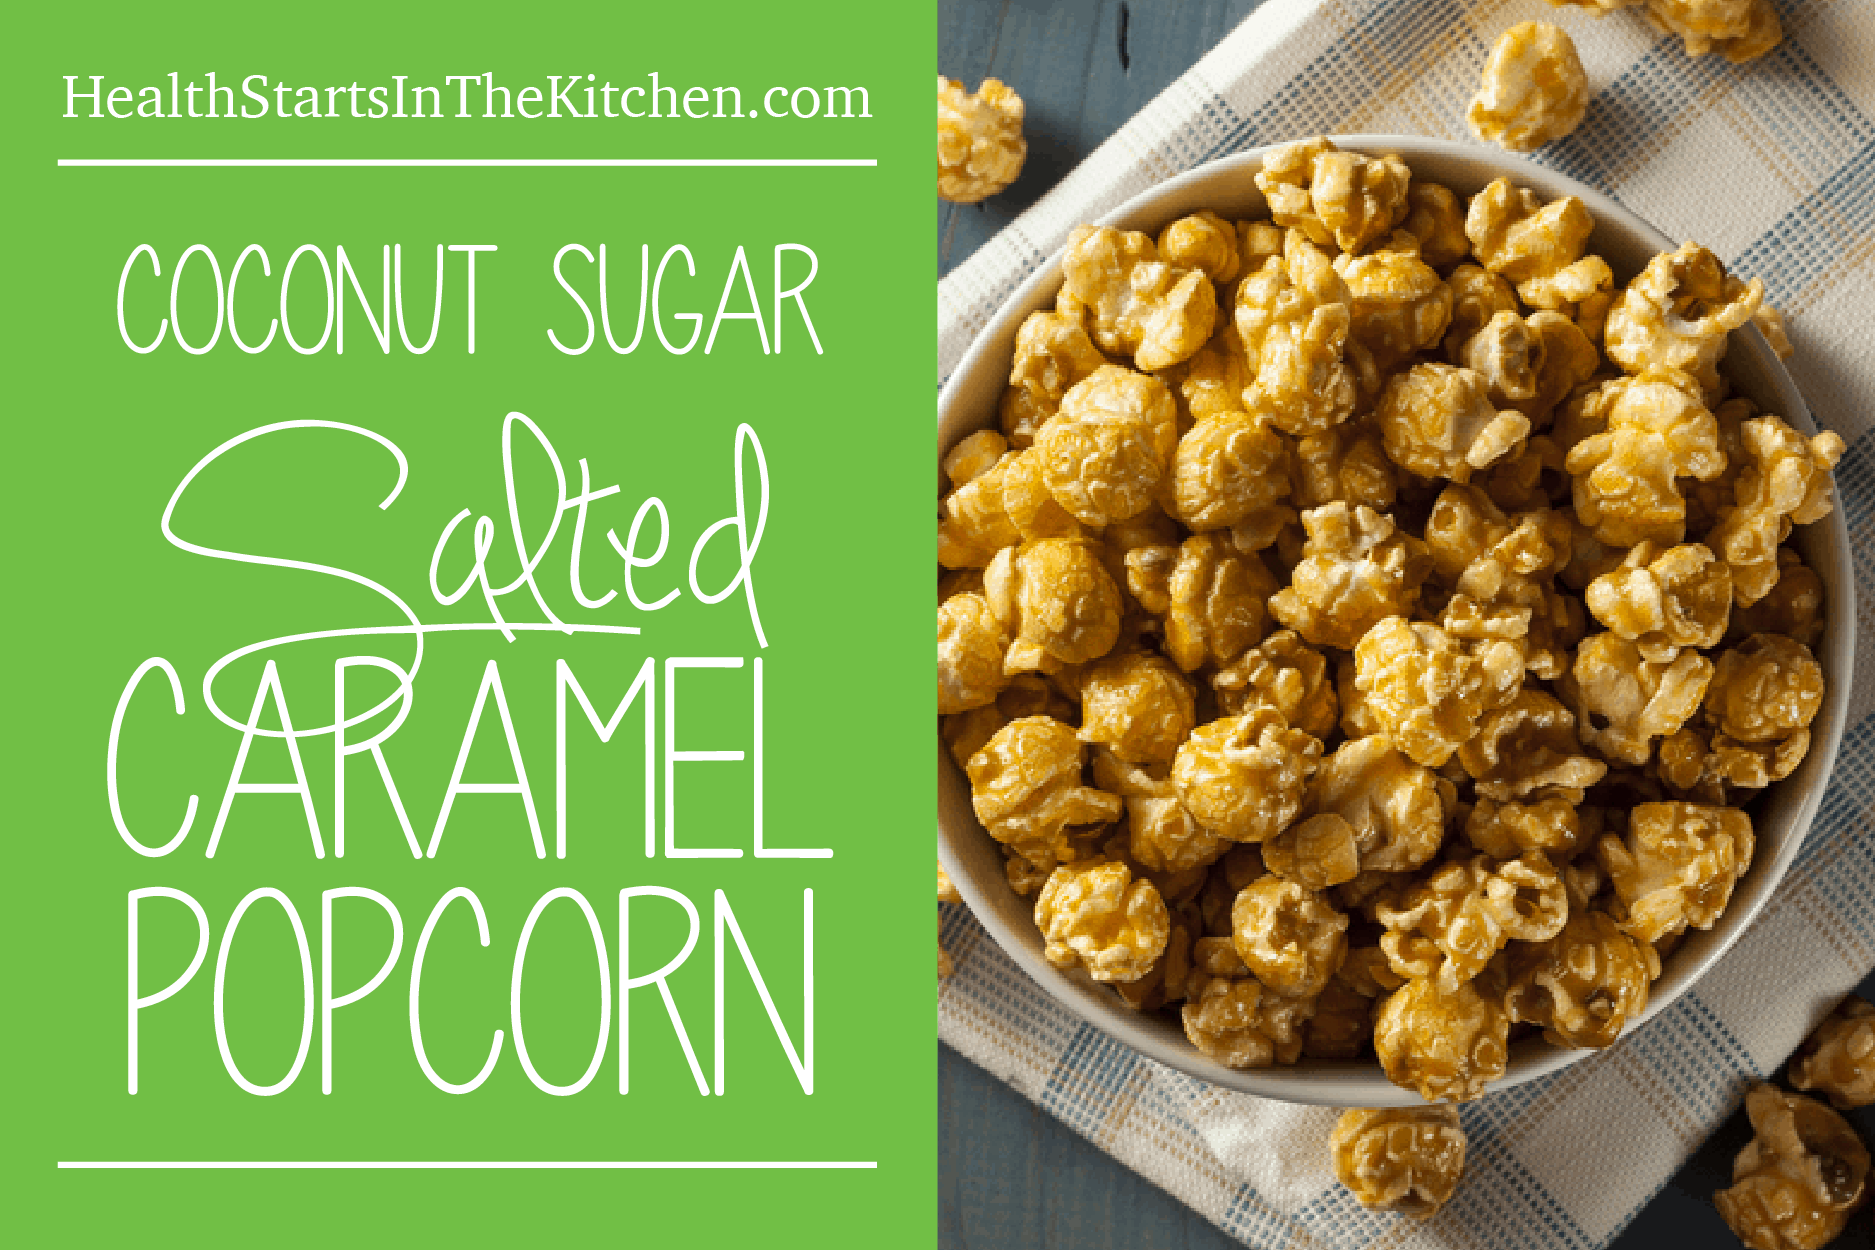 Salted Caramel Popcorn, made with coconut sugar (healthier alternative to cane sugar)